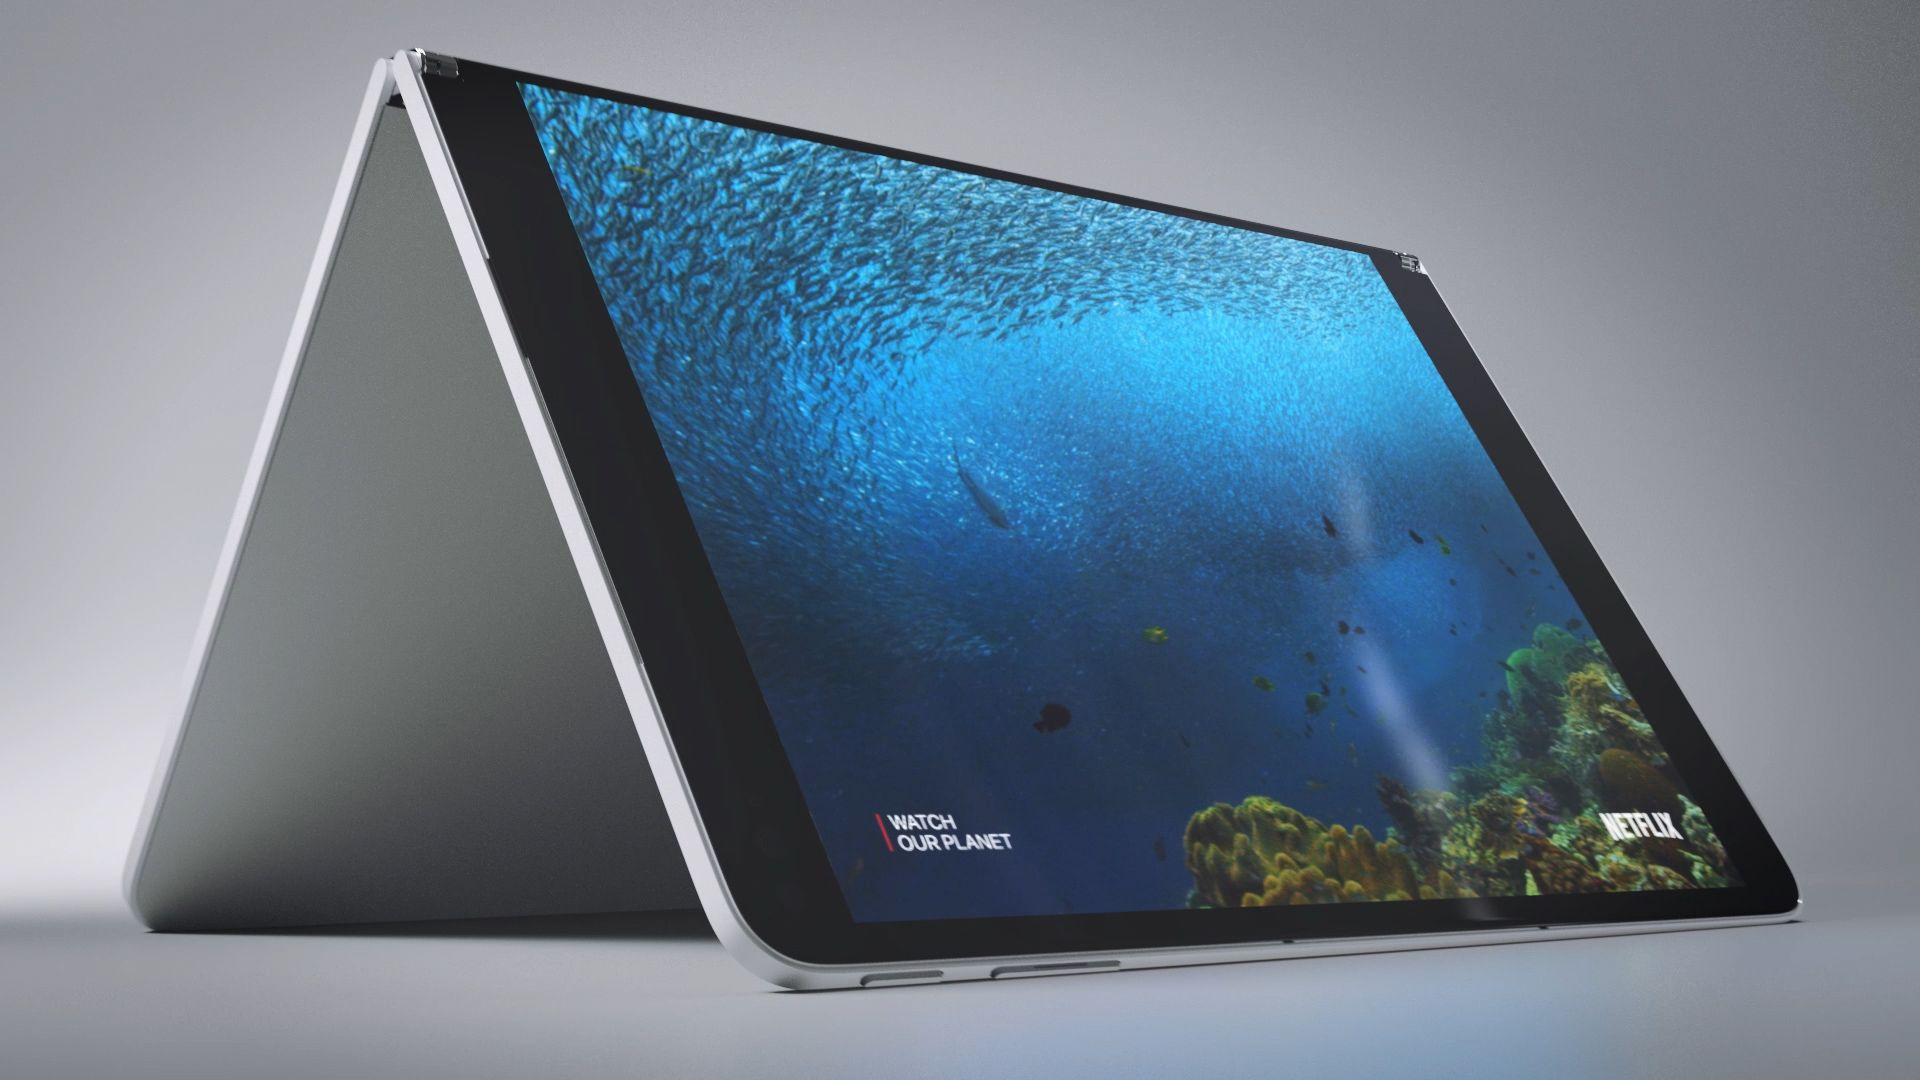 The Surface Neo stands unfolded on a surface and shows a film on a screen